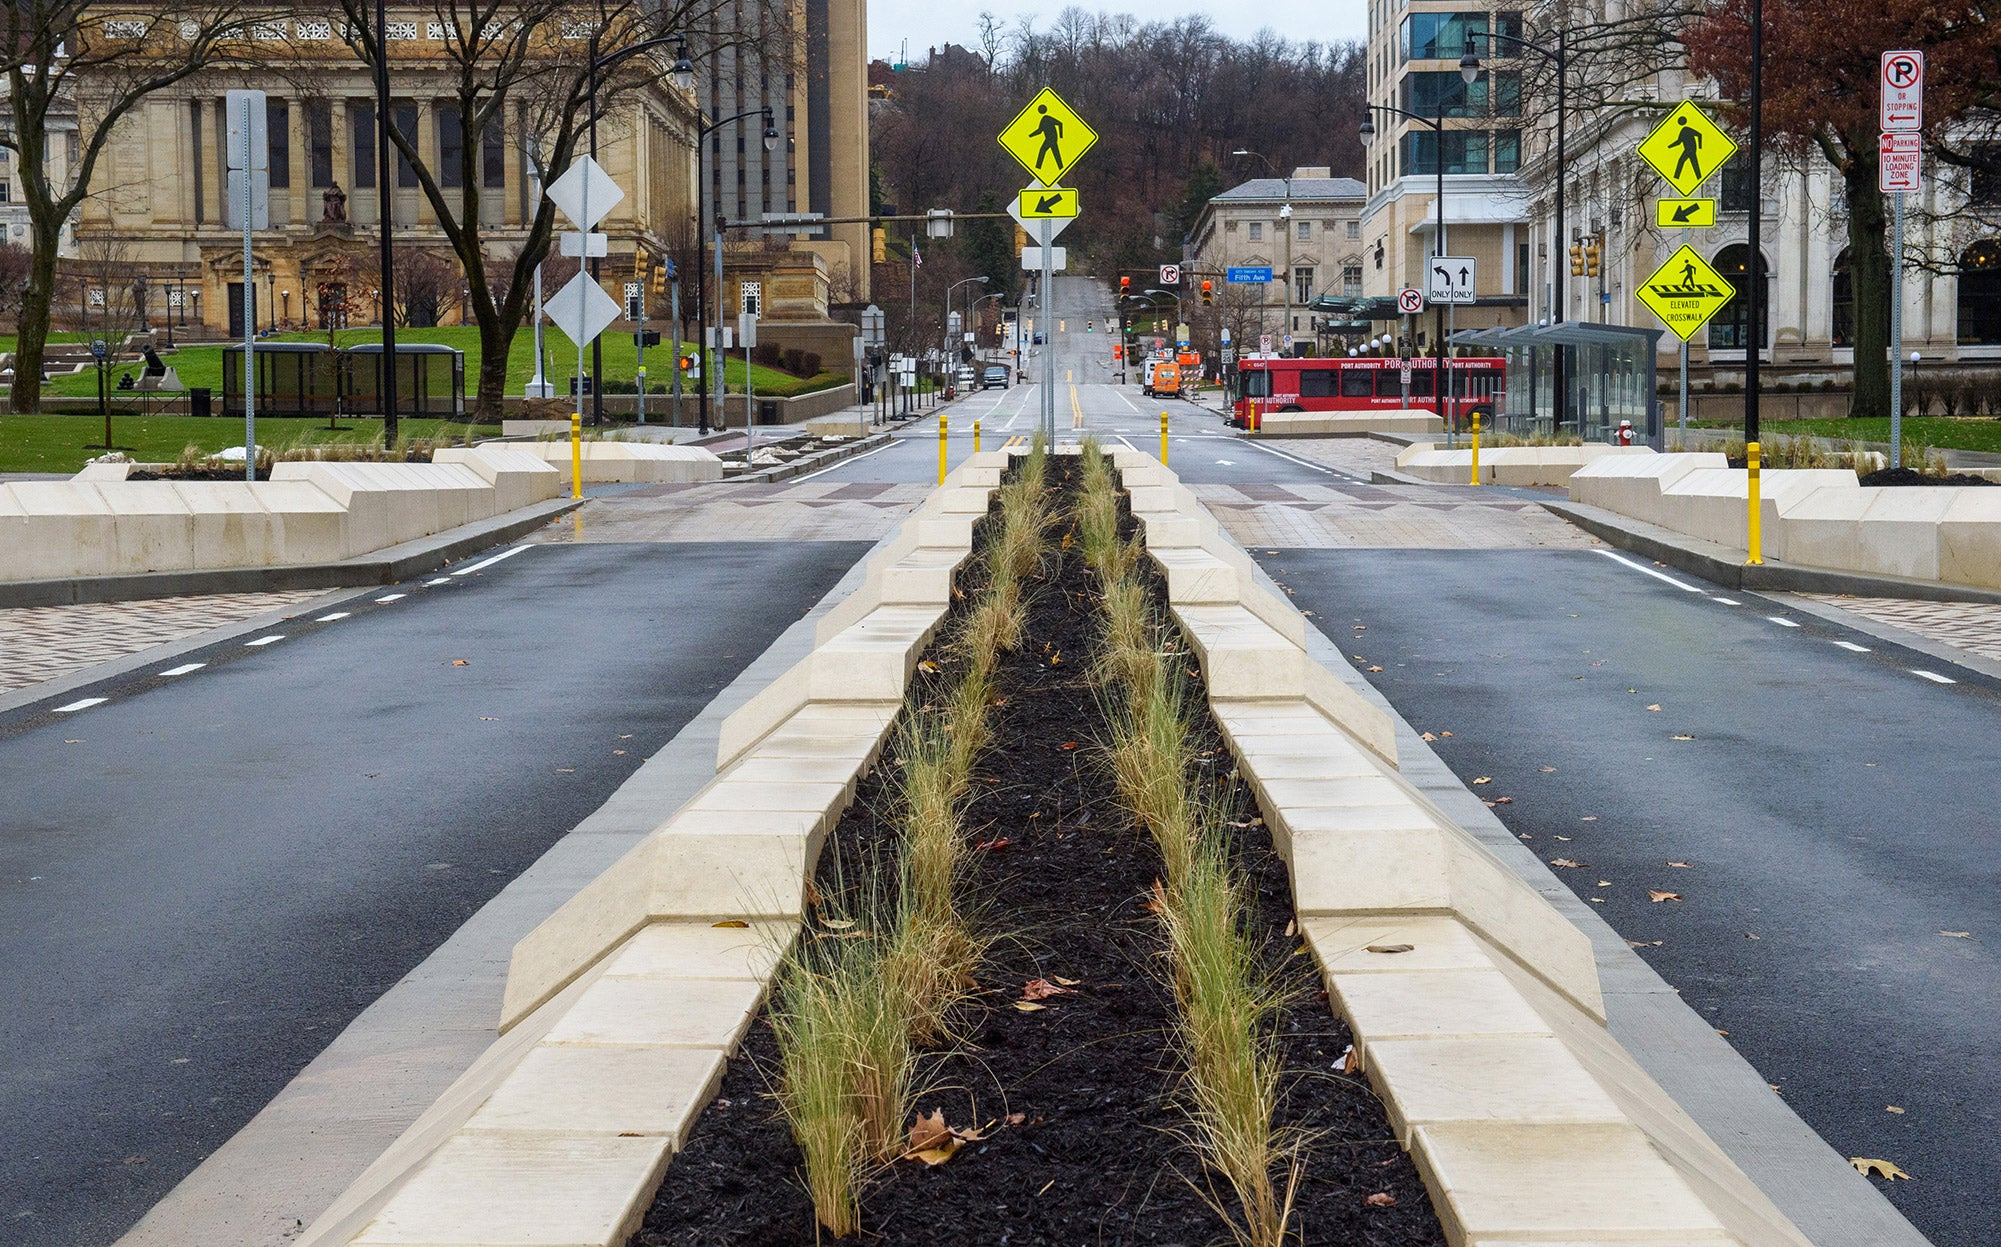 landscaped grassy lane between paved car lanes with raised pedestrian crossings